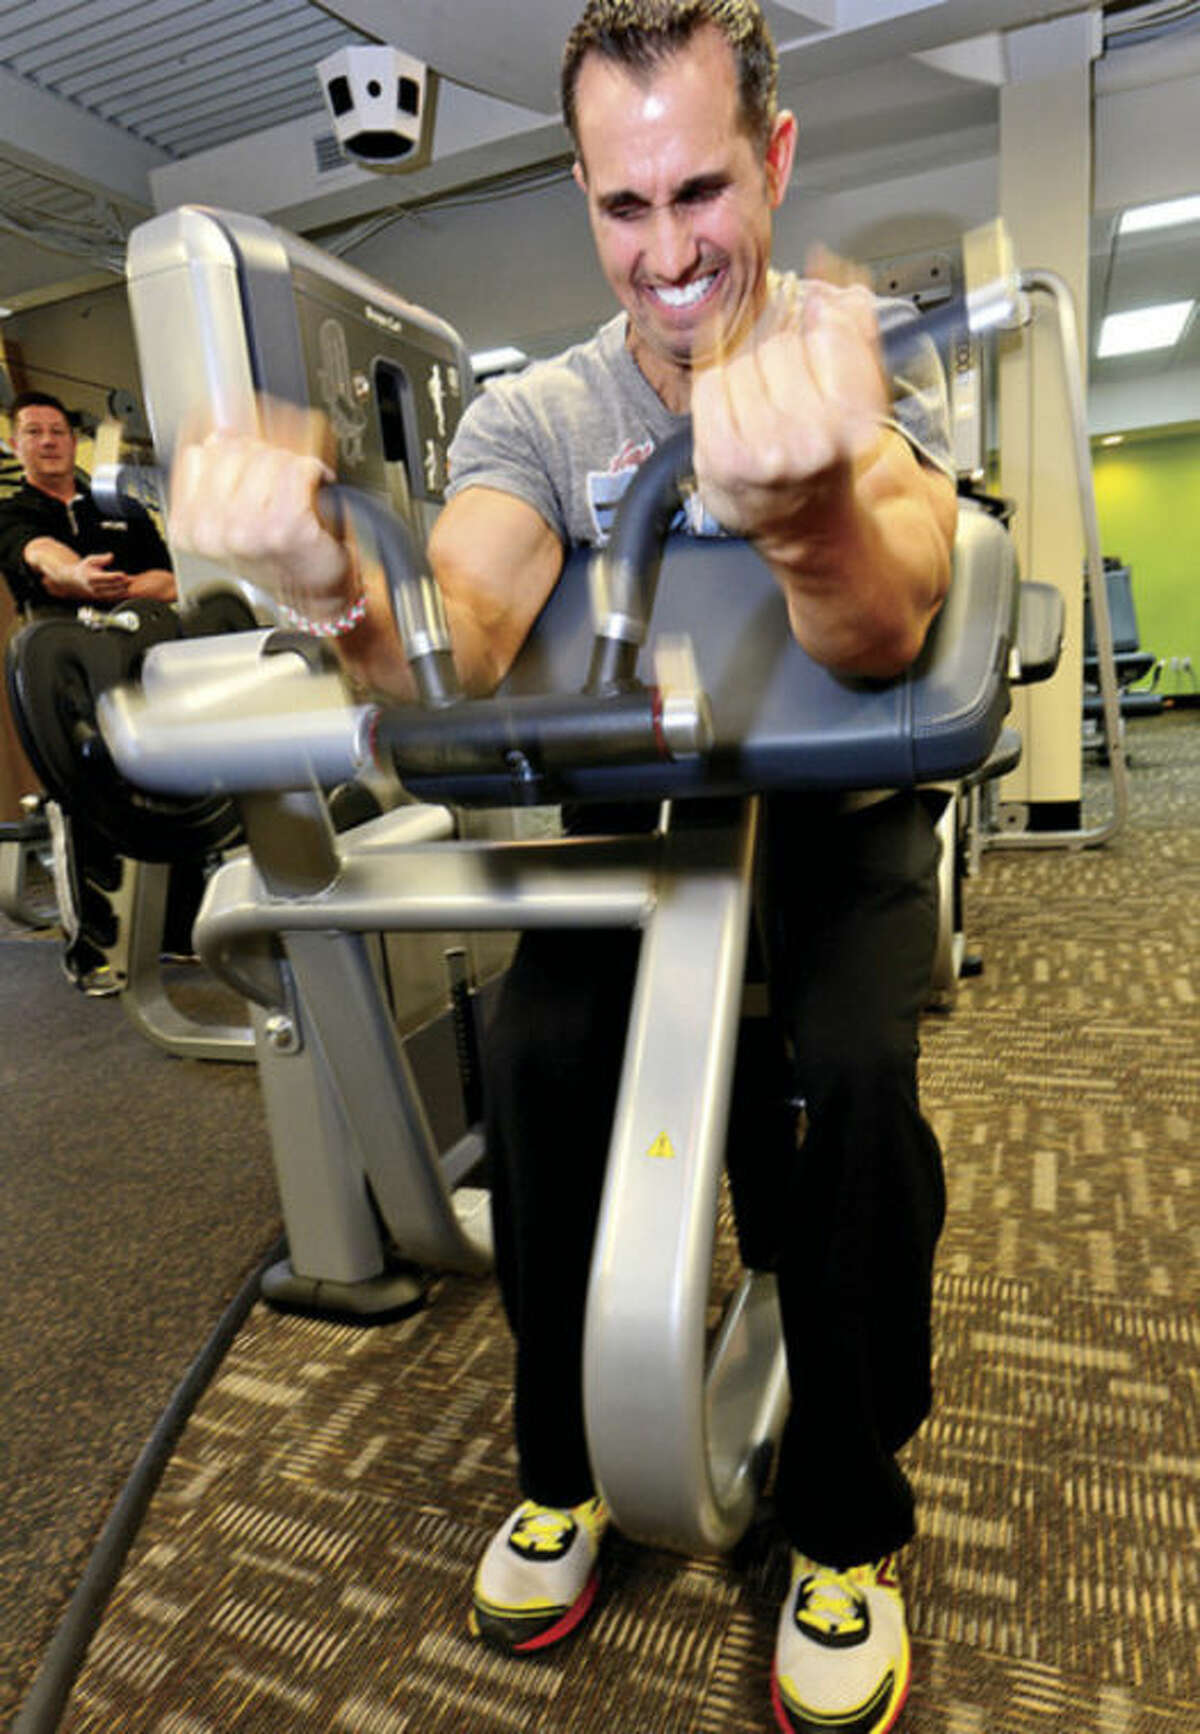 Hour photo / Erik Trautmann Joe Scaturchio, trainer at Anytime Fitness, demonstrates one of the machines in the new 24 hour gym.